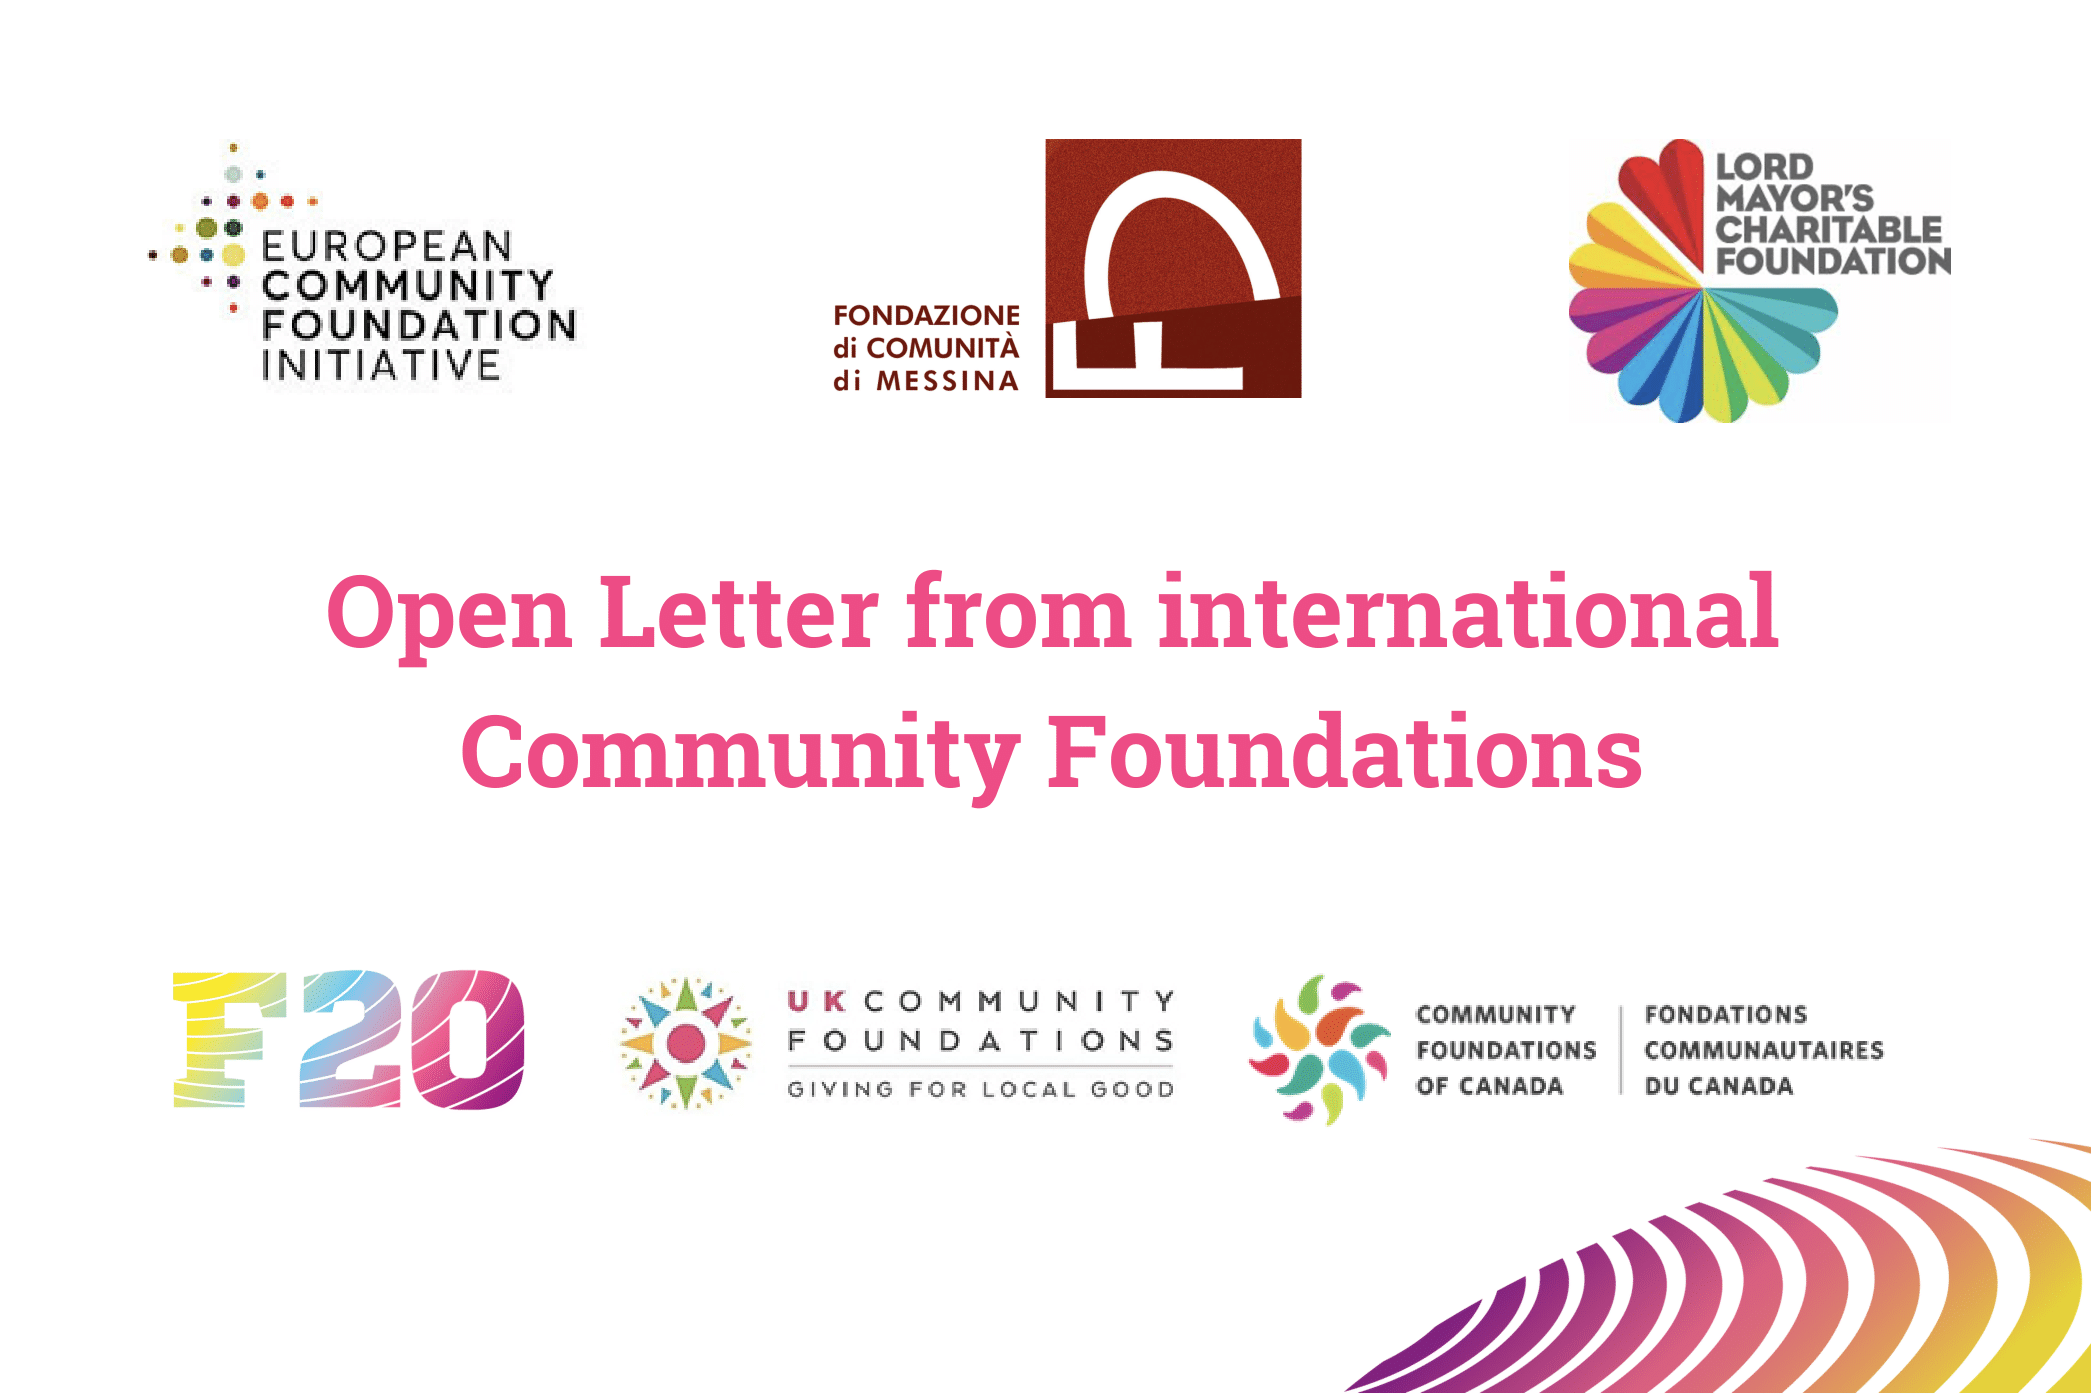 Open Letter by International Community Foundations